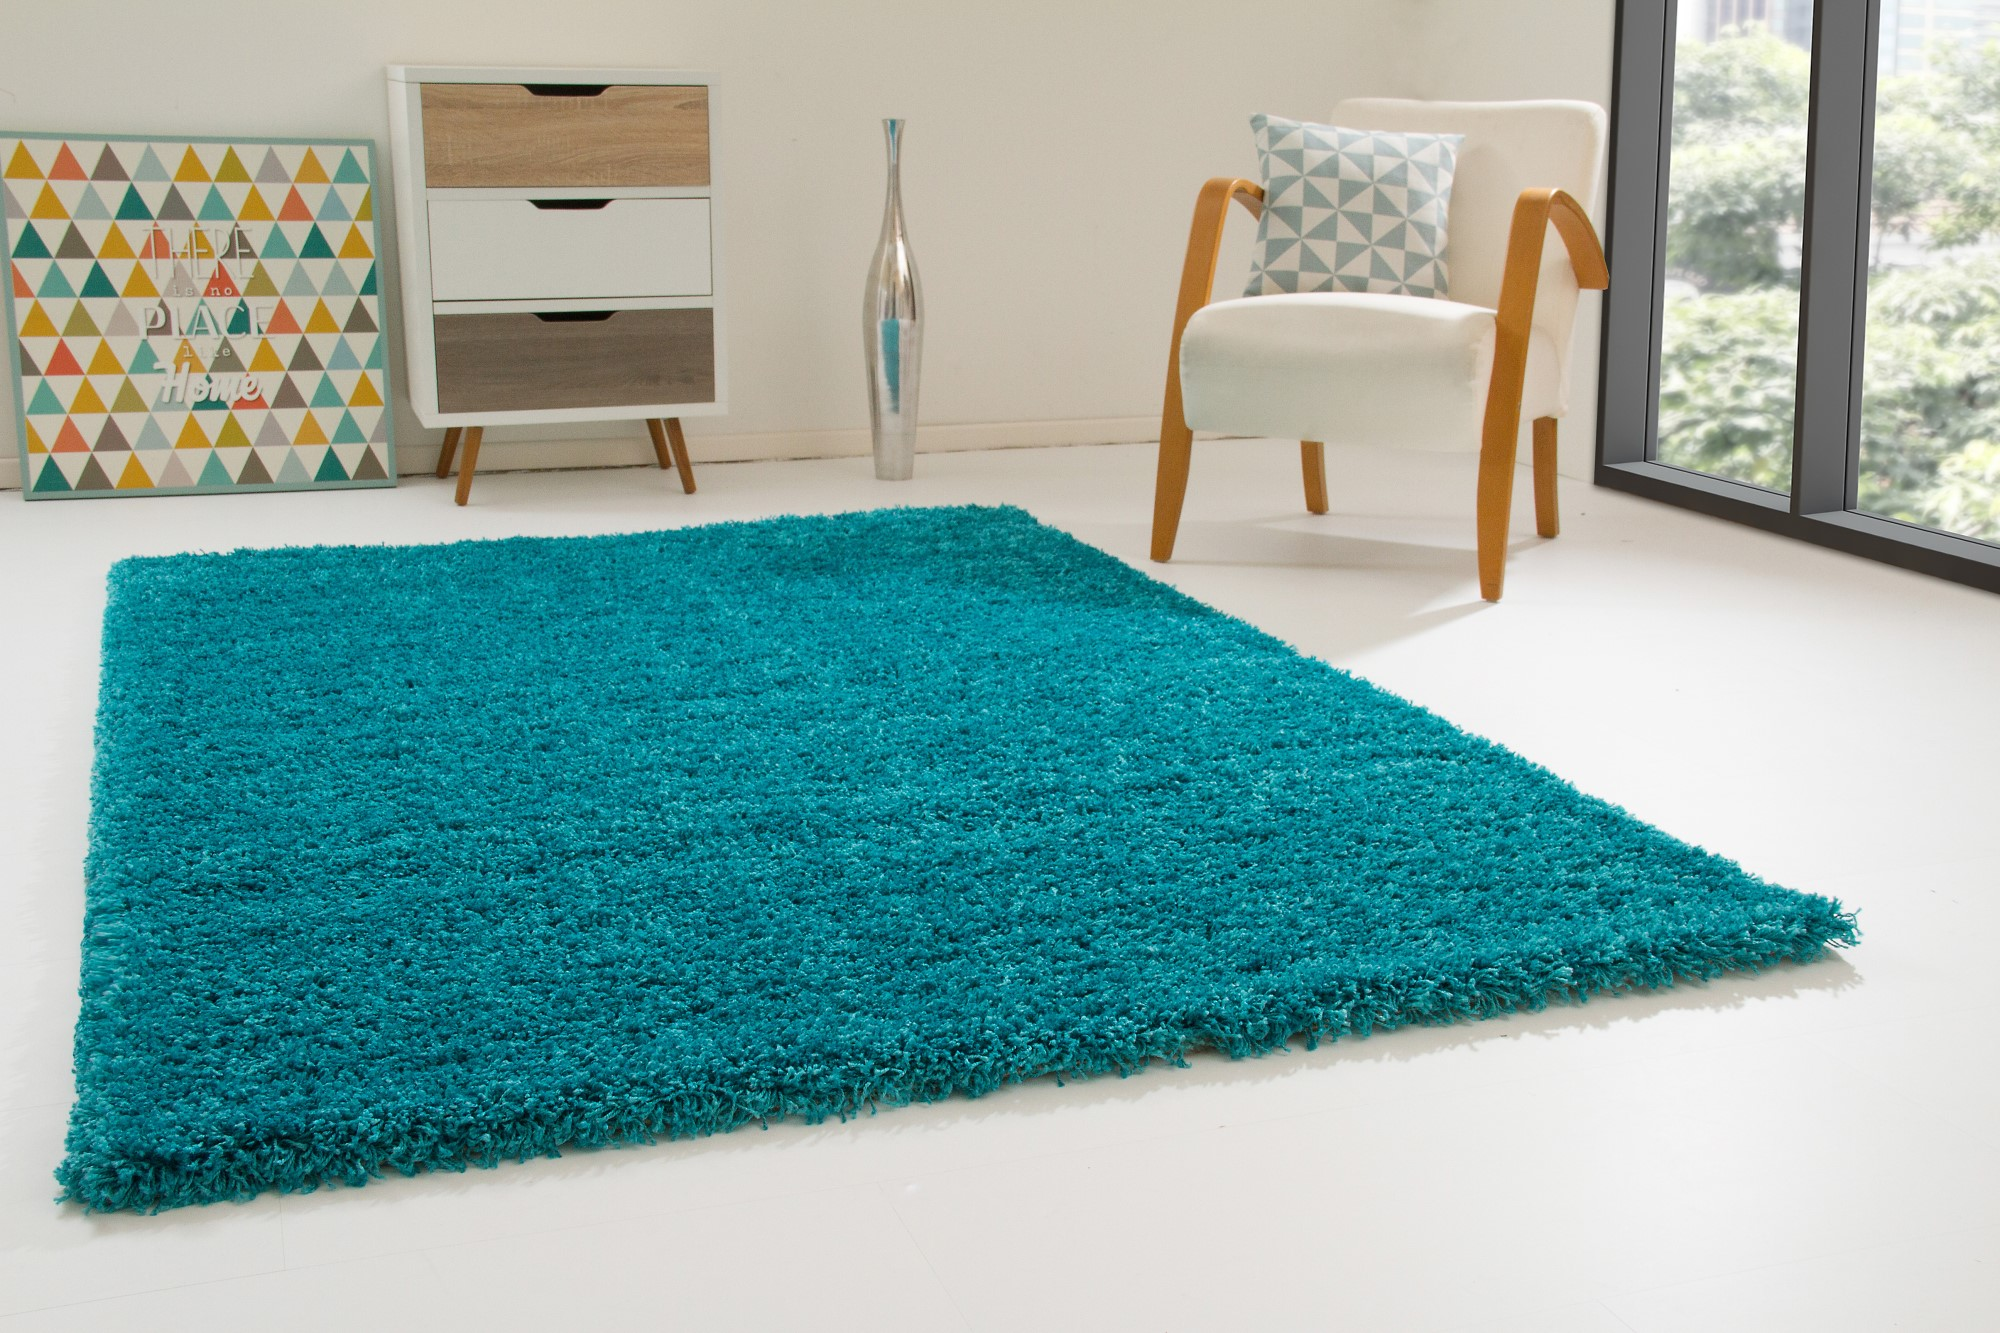 shaggy rug happy xl thick soft pile small extra large new non shedding carpets ebay. Black Bedroom Furniture Sets. Home Design Ideas